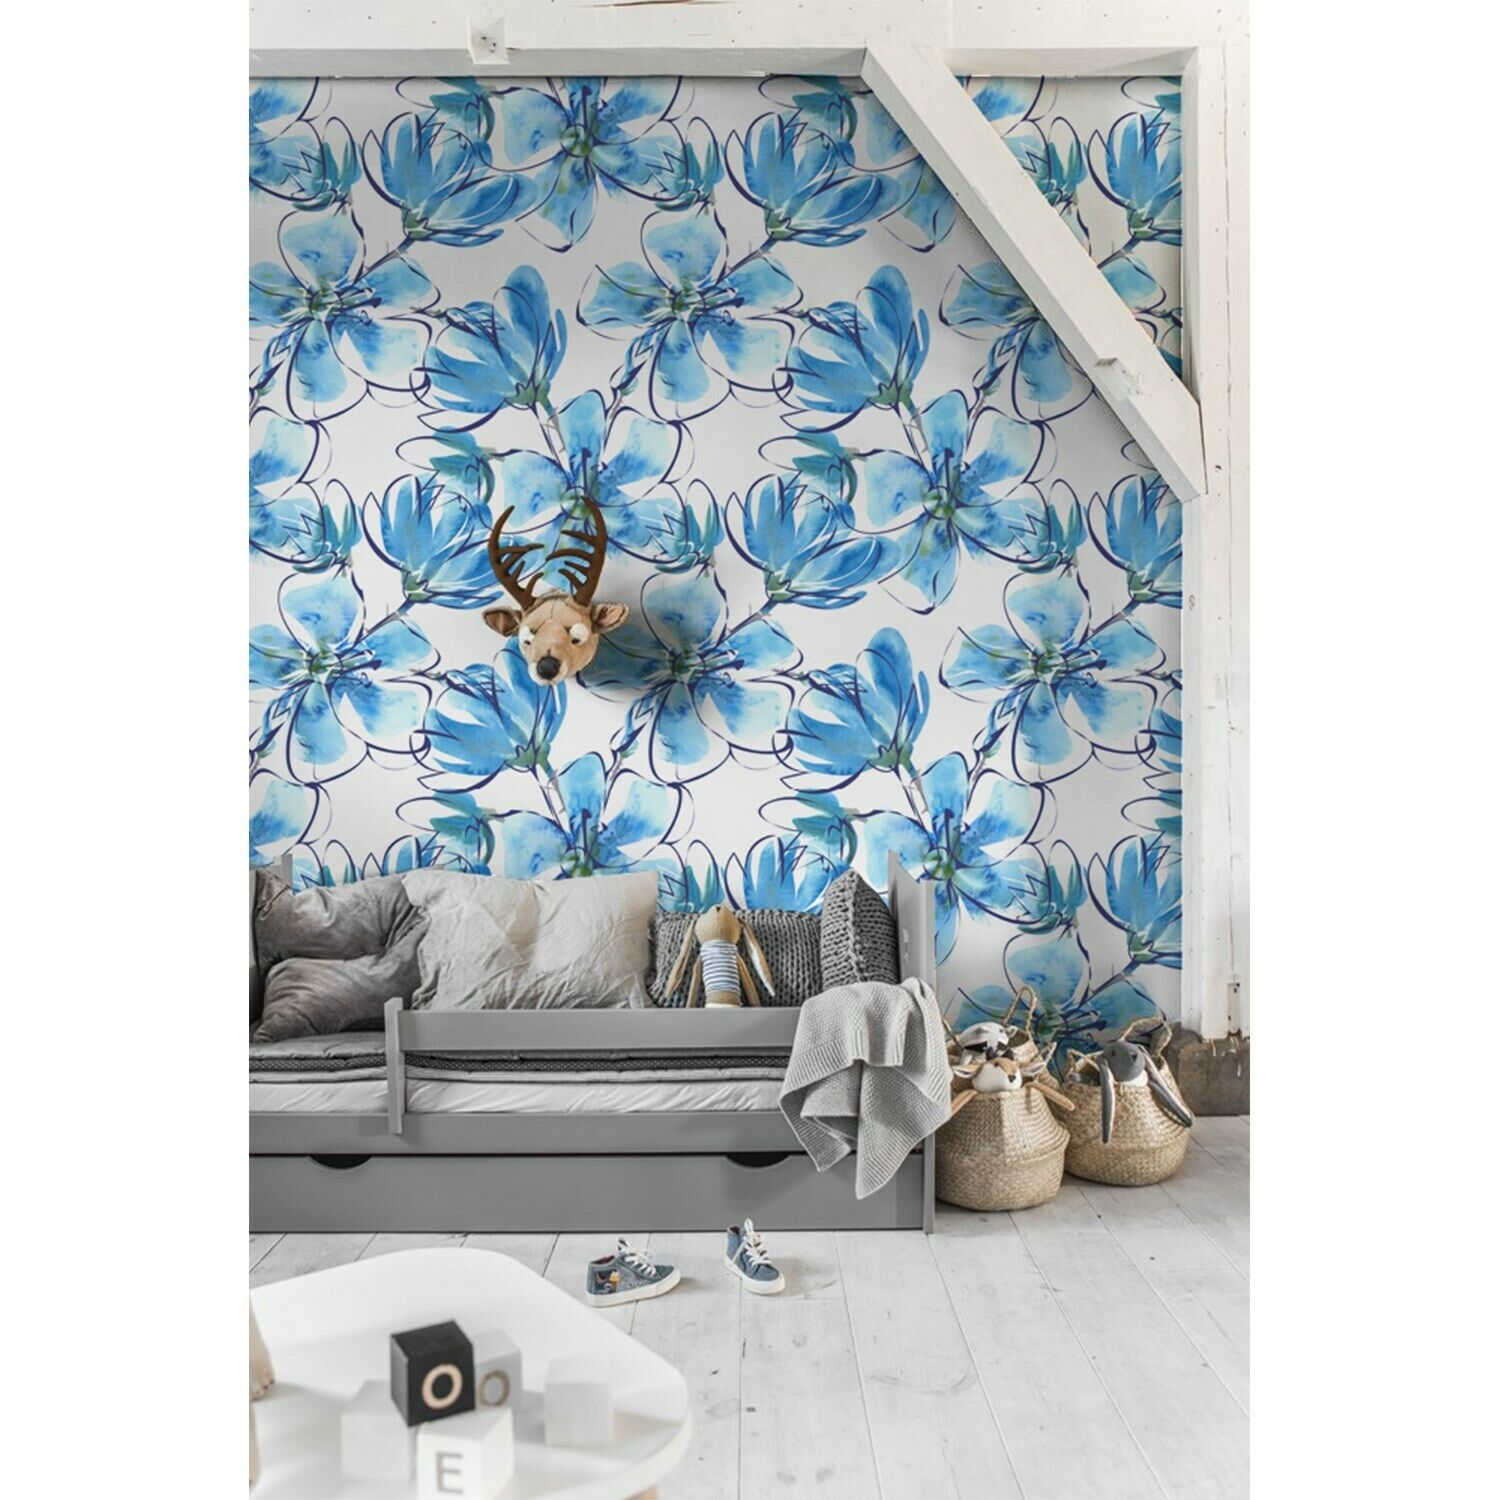 Blau Floral Non-Woven wallpaper waterFarbe feminine abstract painting Mural